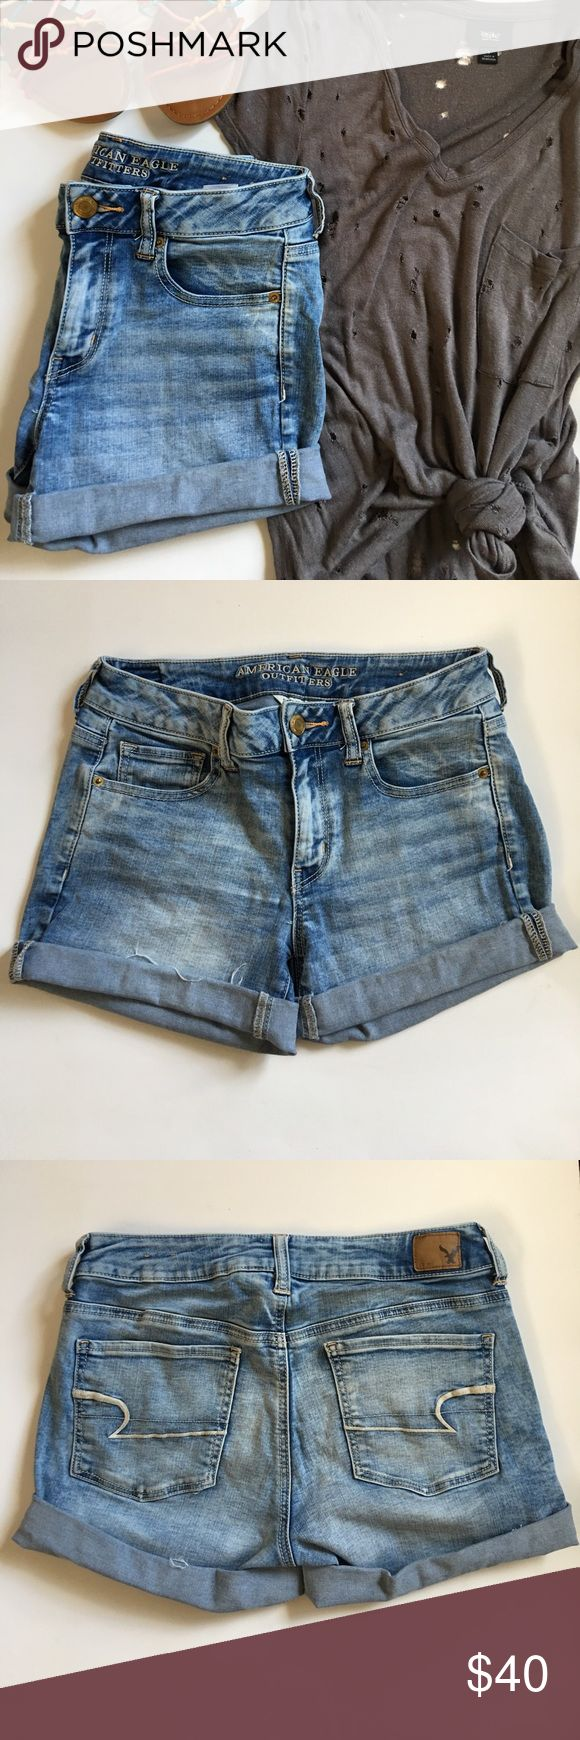 """AE Outfitters denim midi shorts AE Outfitters denim midi shorts. Size 8. Super soft and stretchy denim in a light, faded wash. Can also be worn uncuffed. Inseam is approx 6"""" uncuffed. Rise is approx 9"""". Waist measures approx 15"""" across laying flat. Cuff is semi-finished, but also has some factory fraying on the edges. Minor signs of wear on the bum stitching. American Eagle Outfitters Shorts Jean Shorts"""